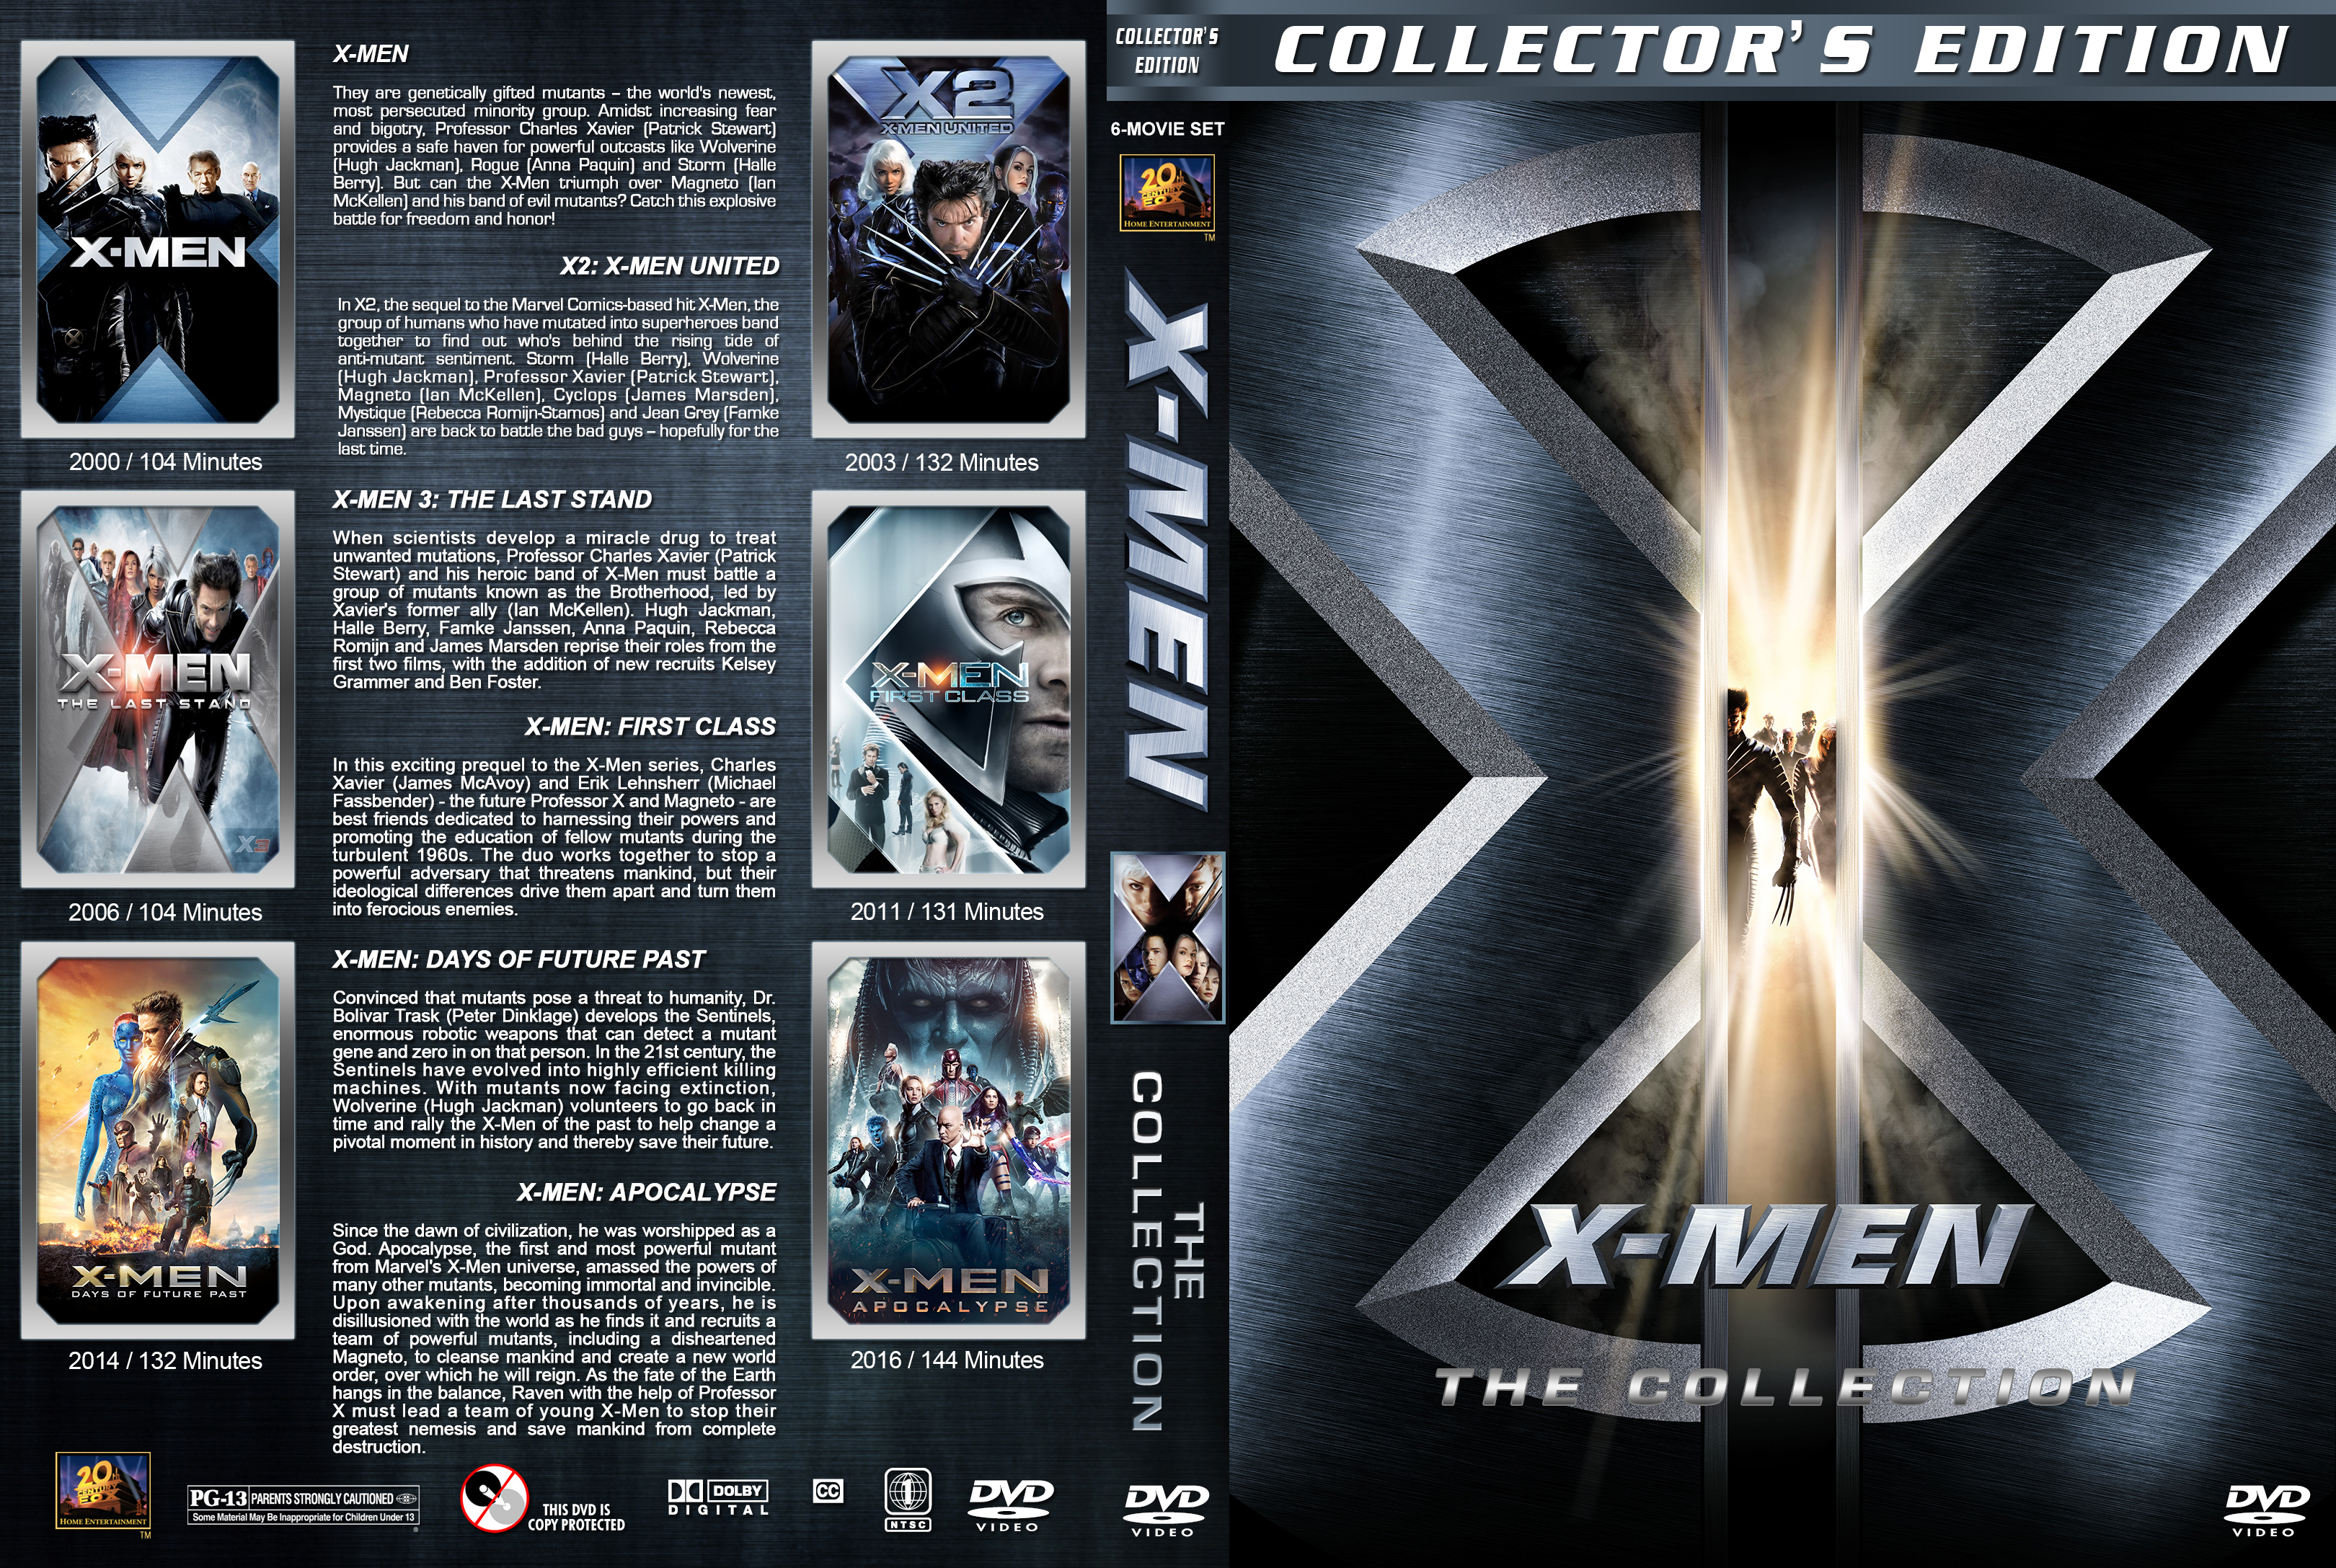 xmen the collection 20002016 covers dvd covers and